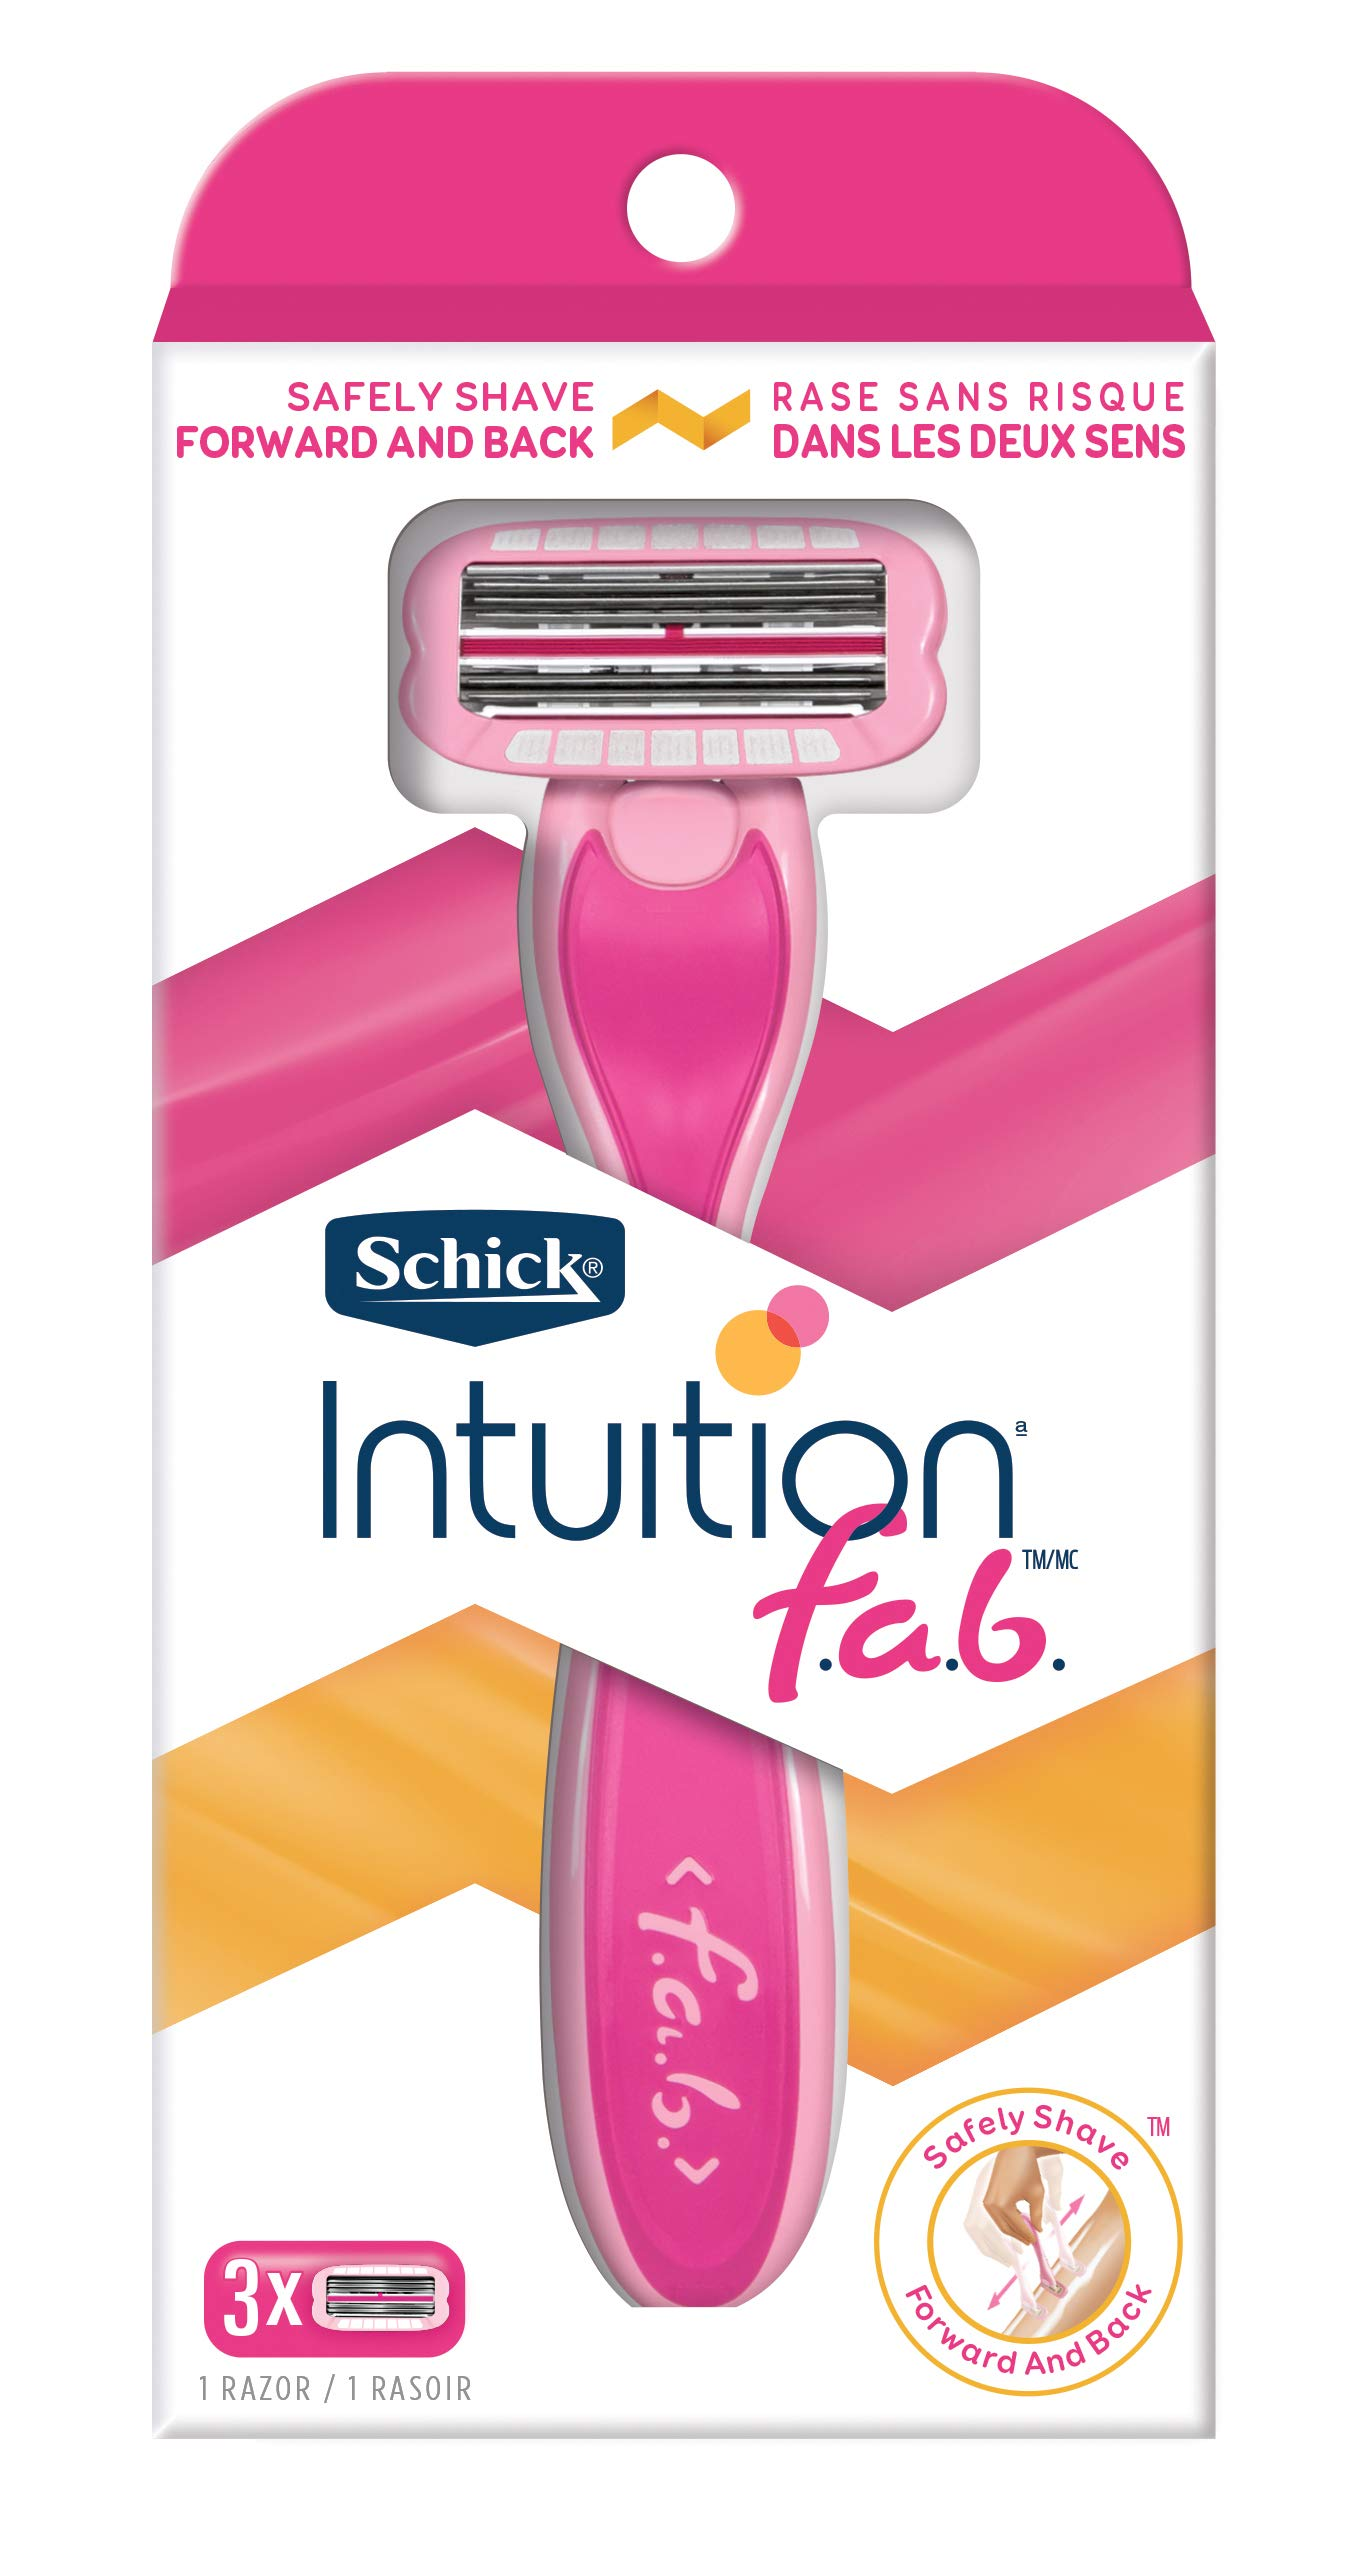 Schick Intuition F.a.b. Razor for Women with 1 Handle and 3 Razor Blade Refills by Schick